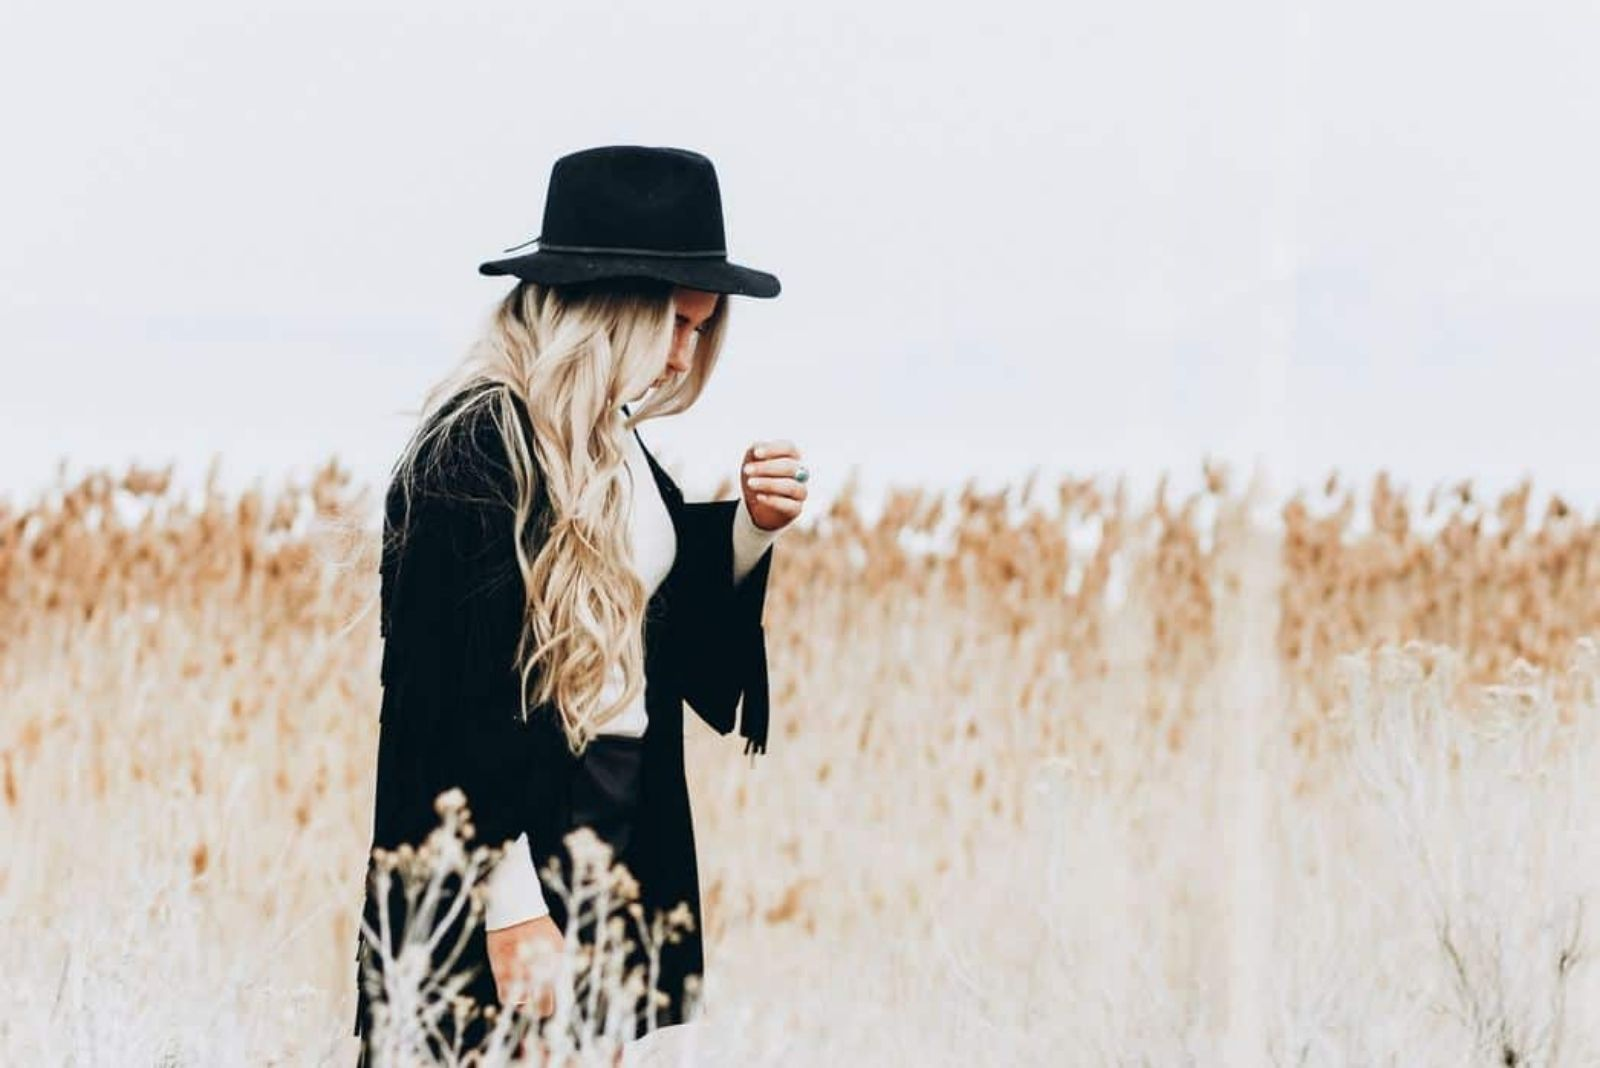 a zen of long blue hair with a black hat standing in a field